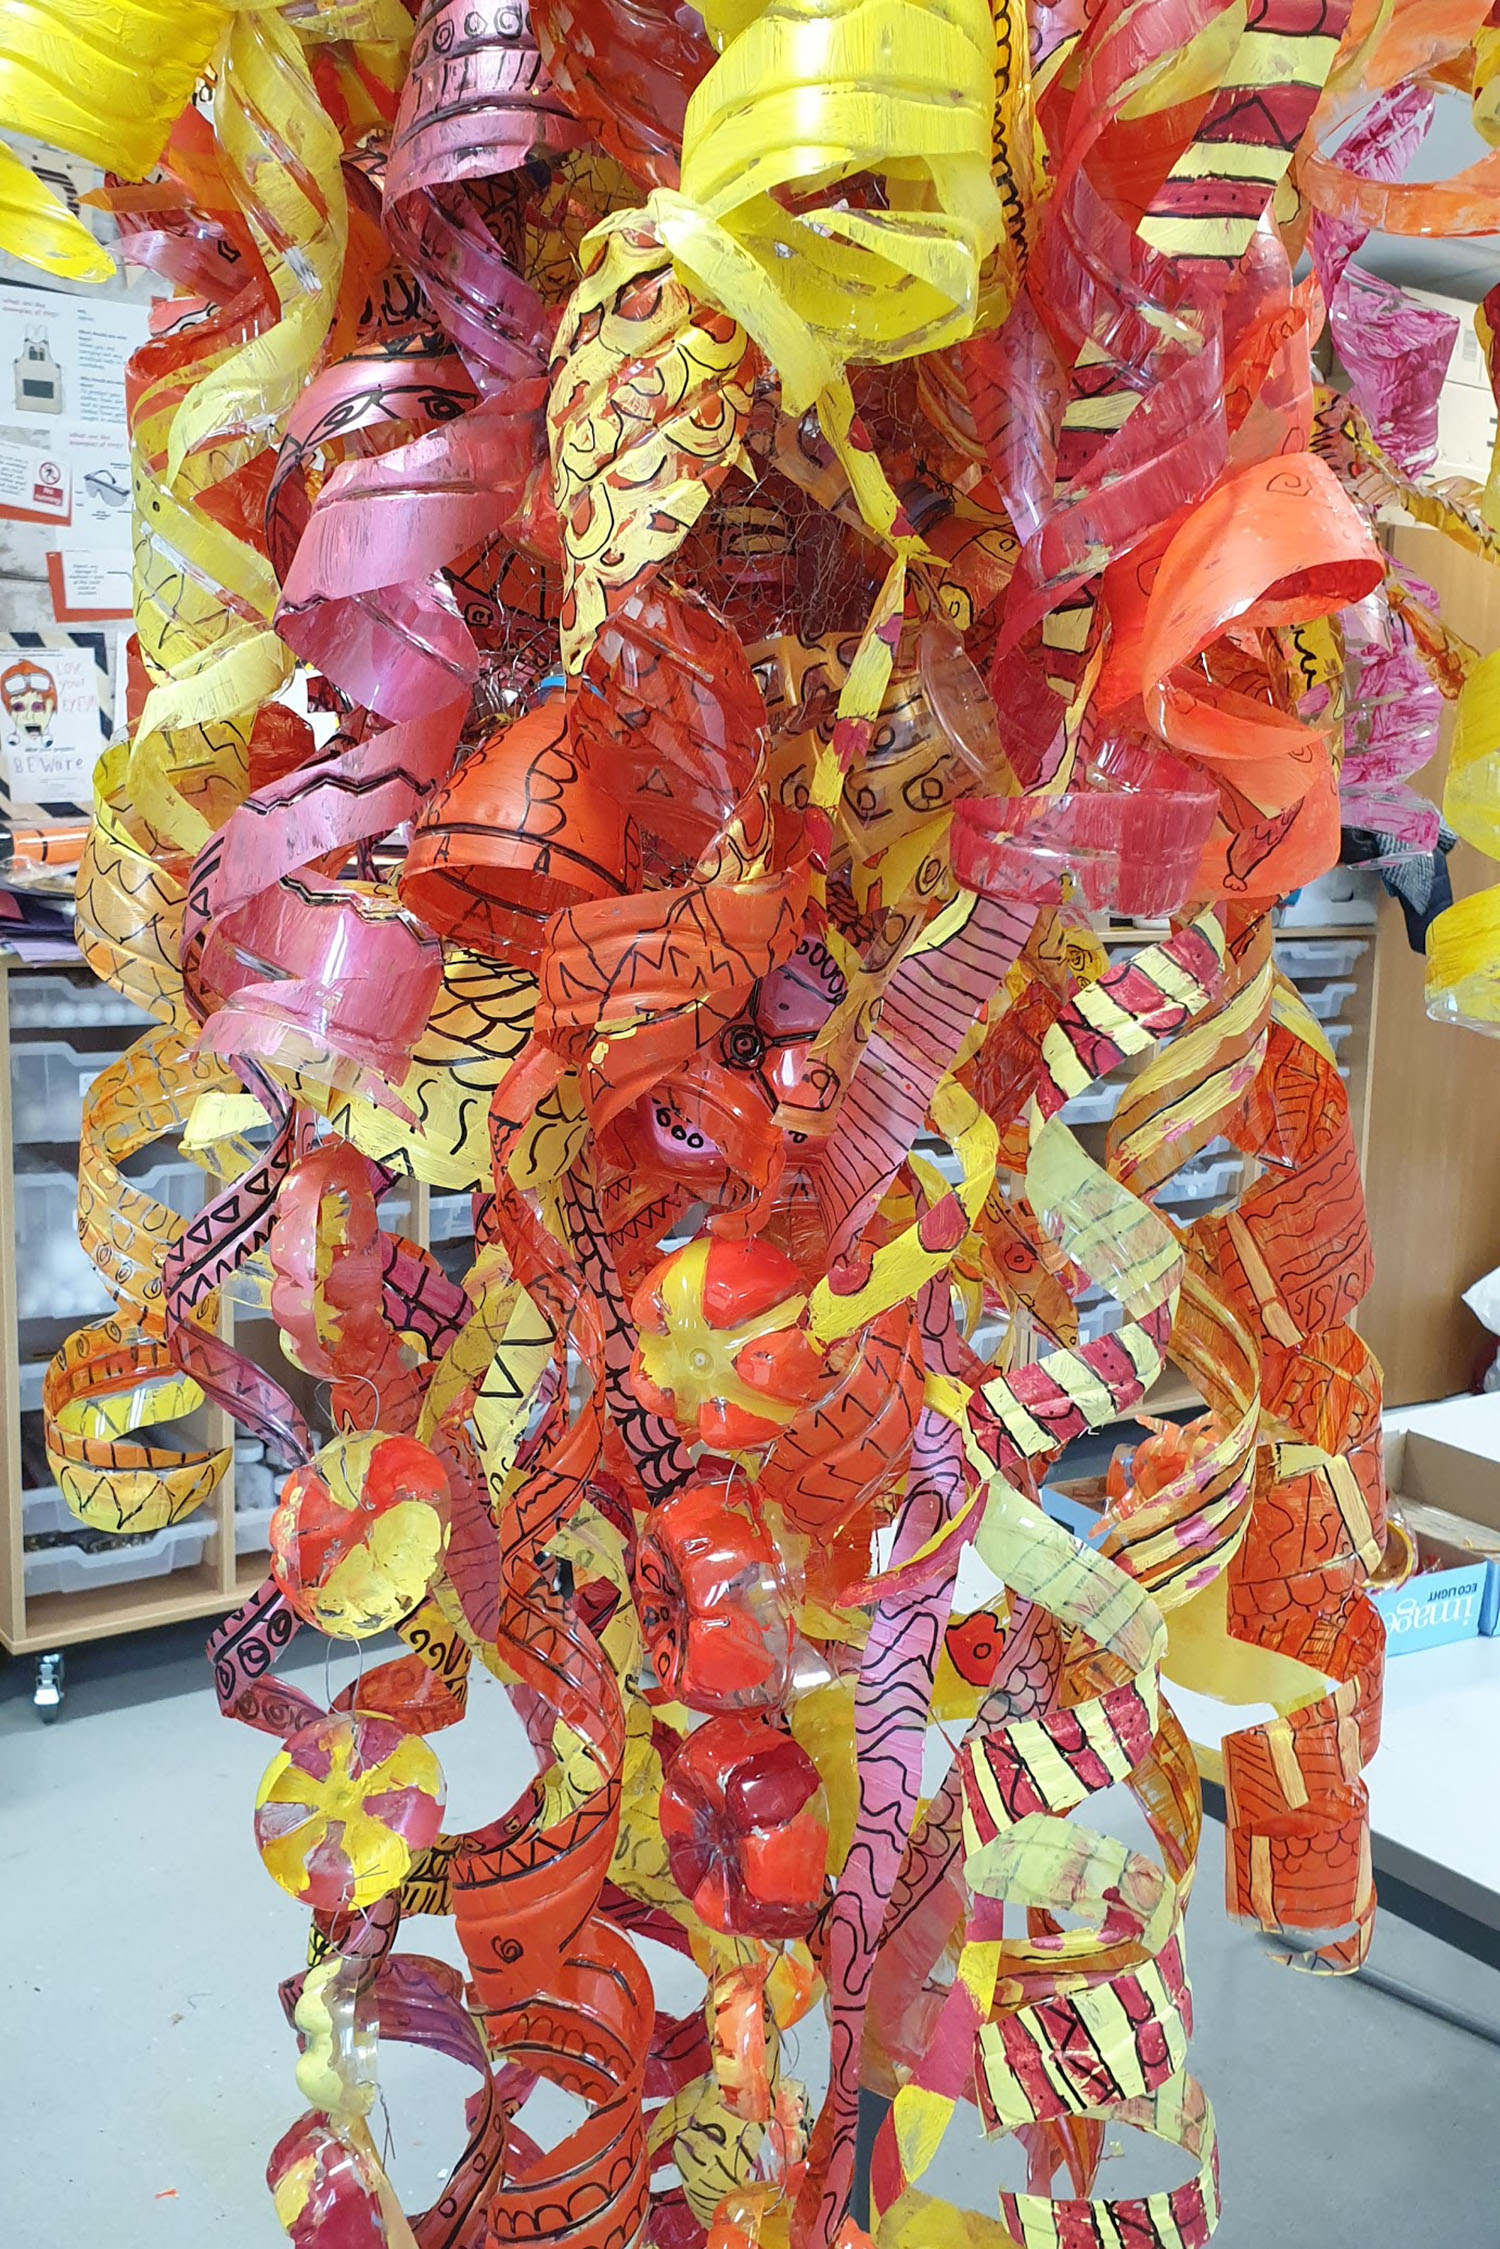 Putney High School / Recycled Bottle Sculptures for Entrance Area